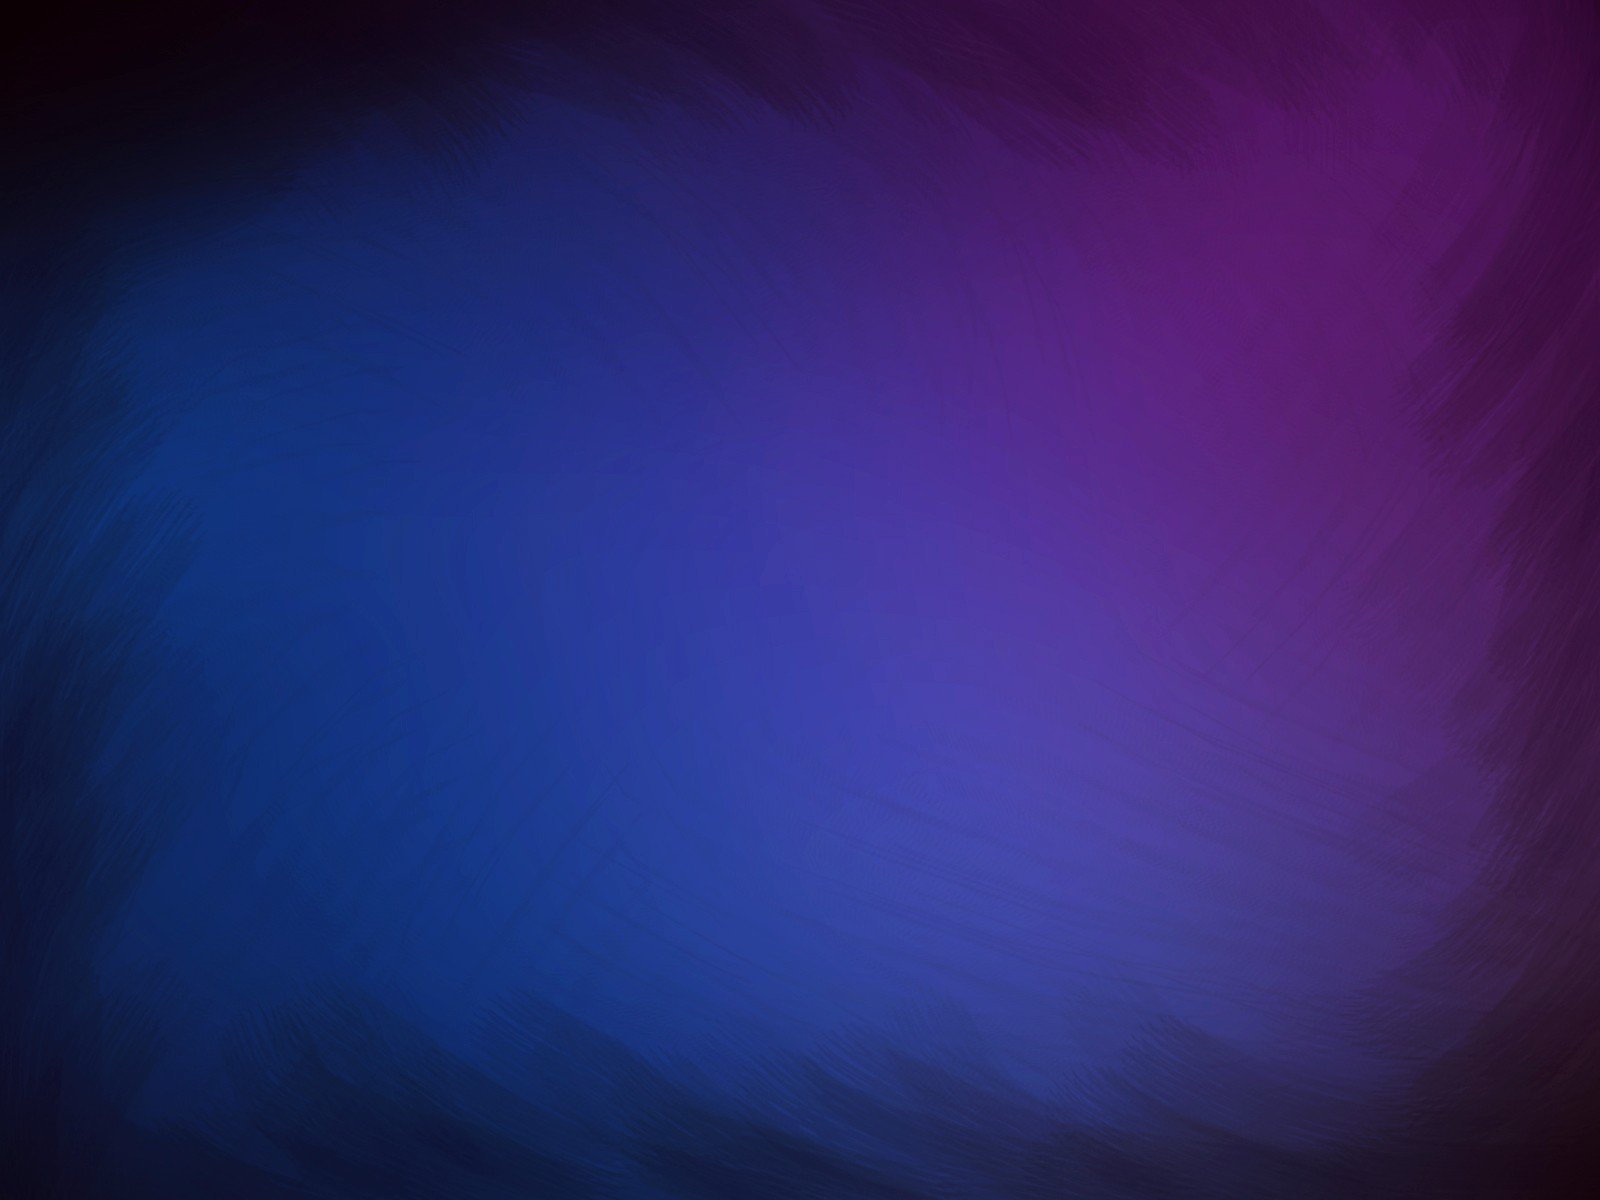 Blue Purple Backgrounds - WallpaperPulse